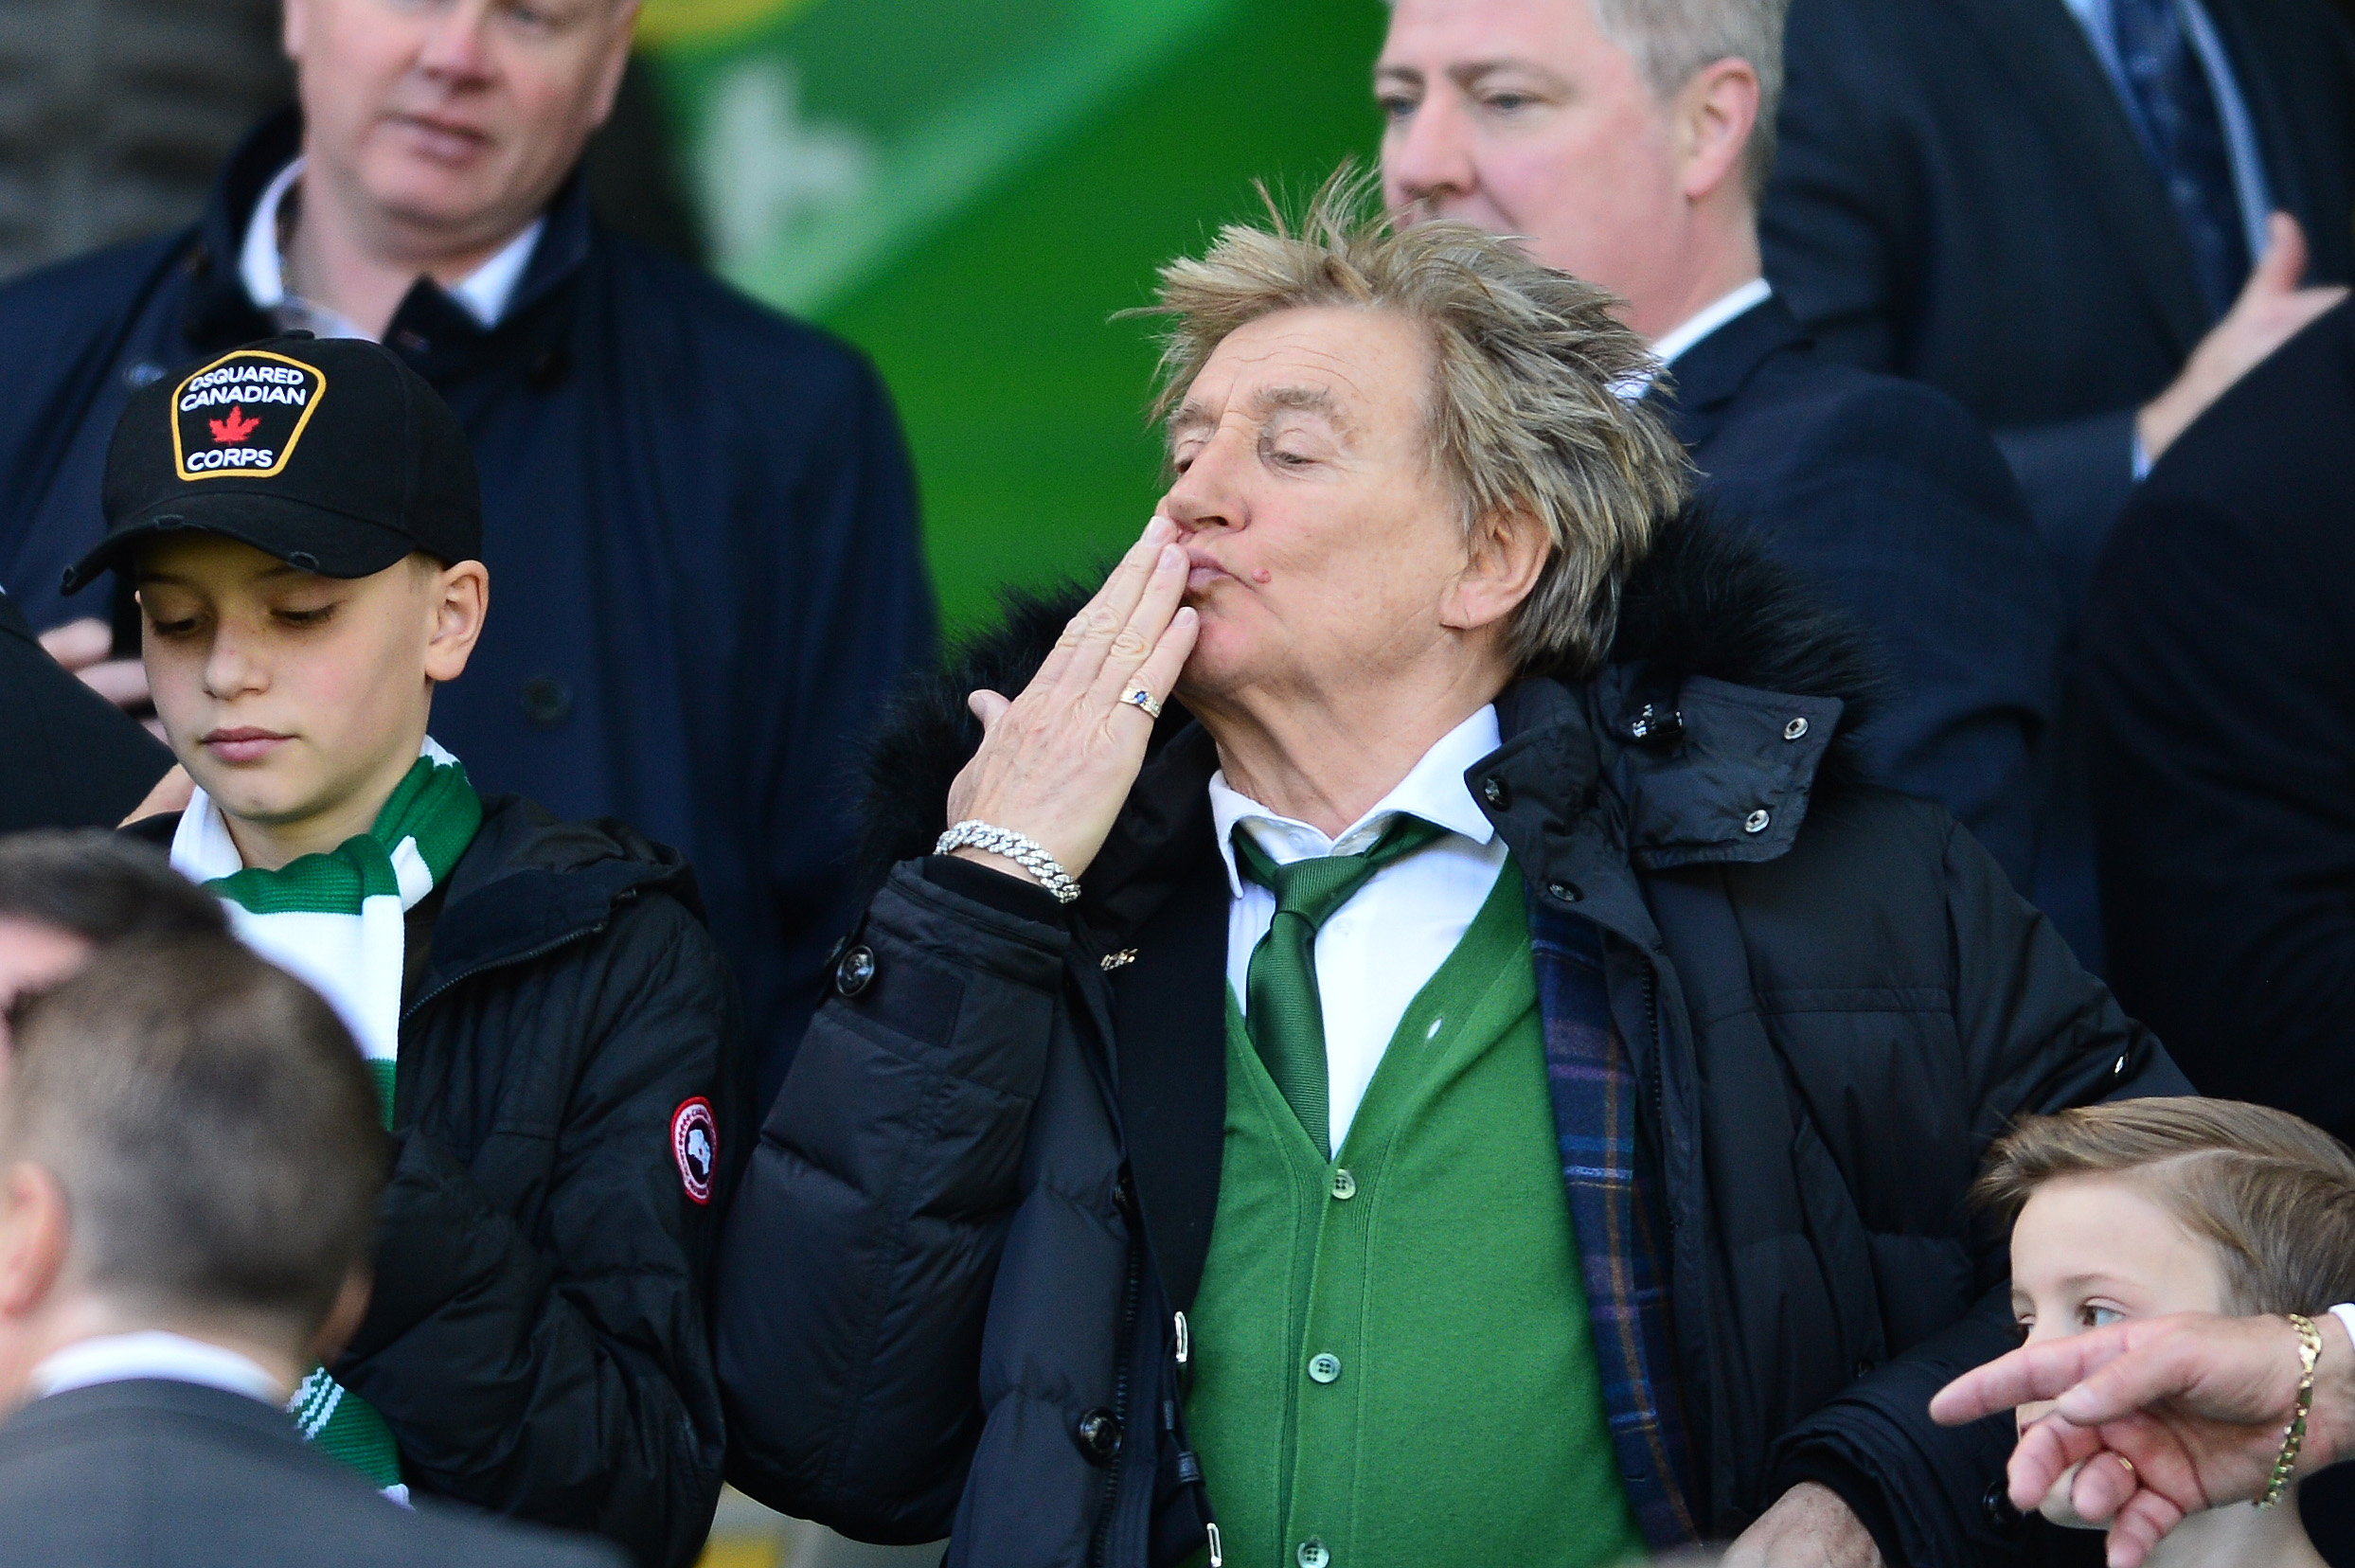 GLASGOW, SCOTLAND - MARCH 31: Celtic fan and musician Rod Stewart blows a kiss to fans during the Ladbrokes Scottish Premiership match between Celtic and Rangers at Celtic Park on March 31, 2019 in Glasgow, Scotland. (Photo by Mark Runnacles/Getty Images)